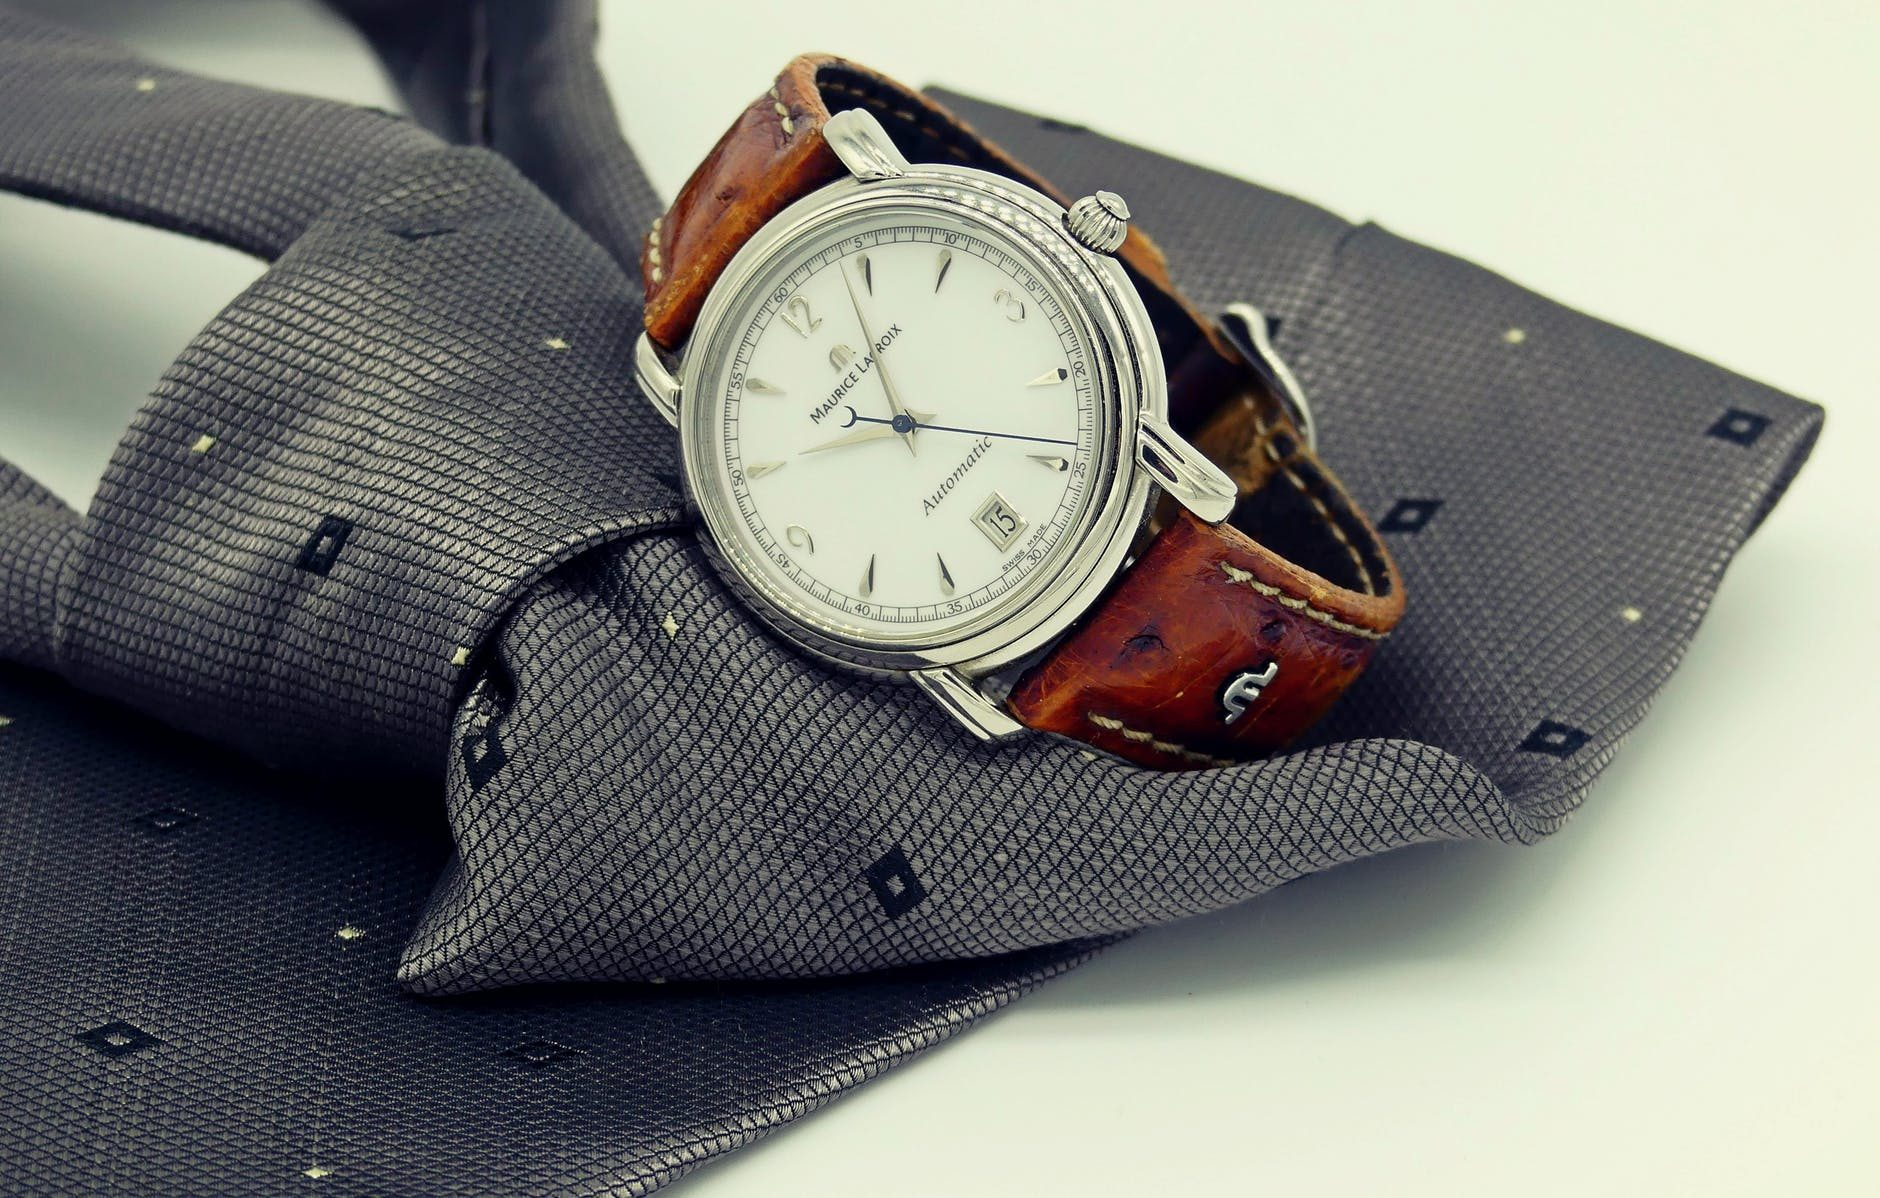 Top 7 Most Stylish Men's Dress Watches